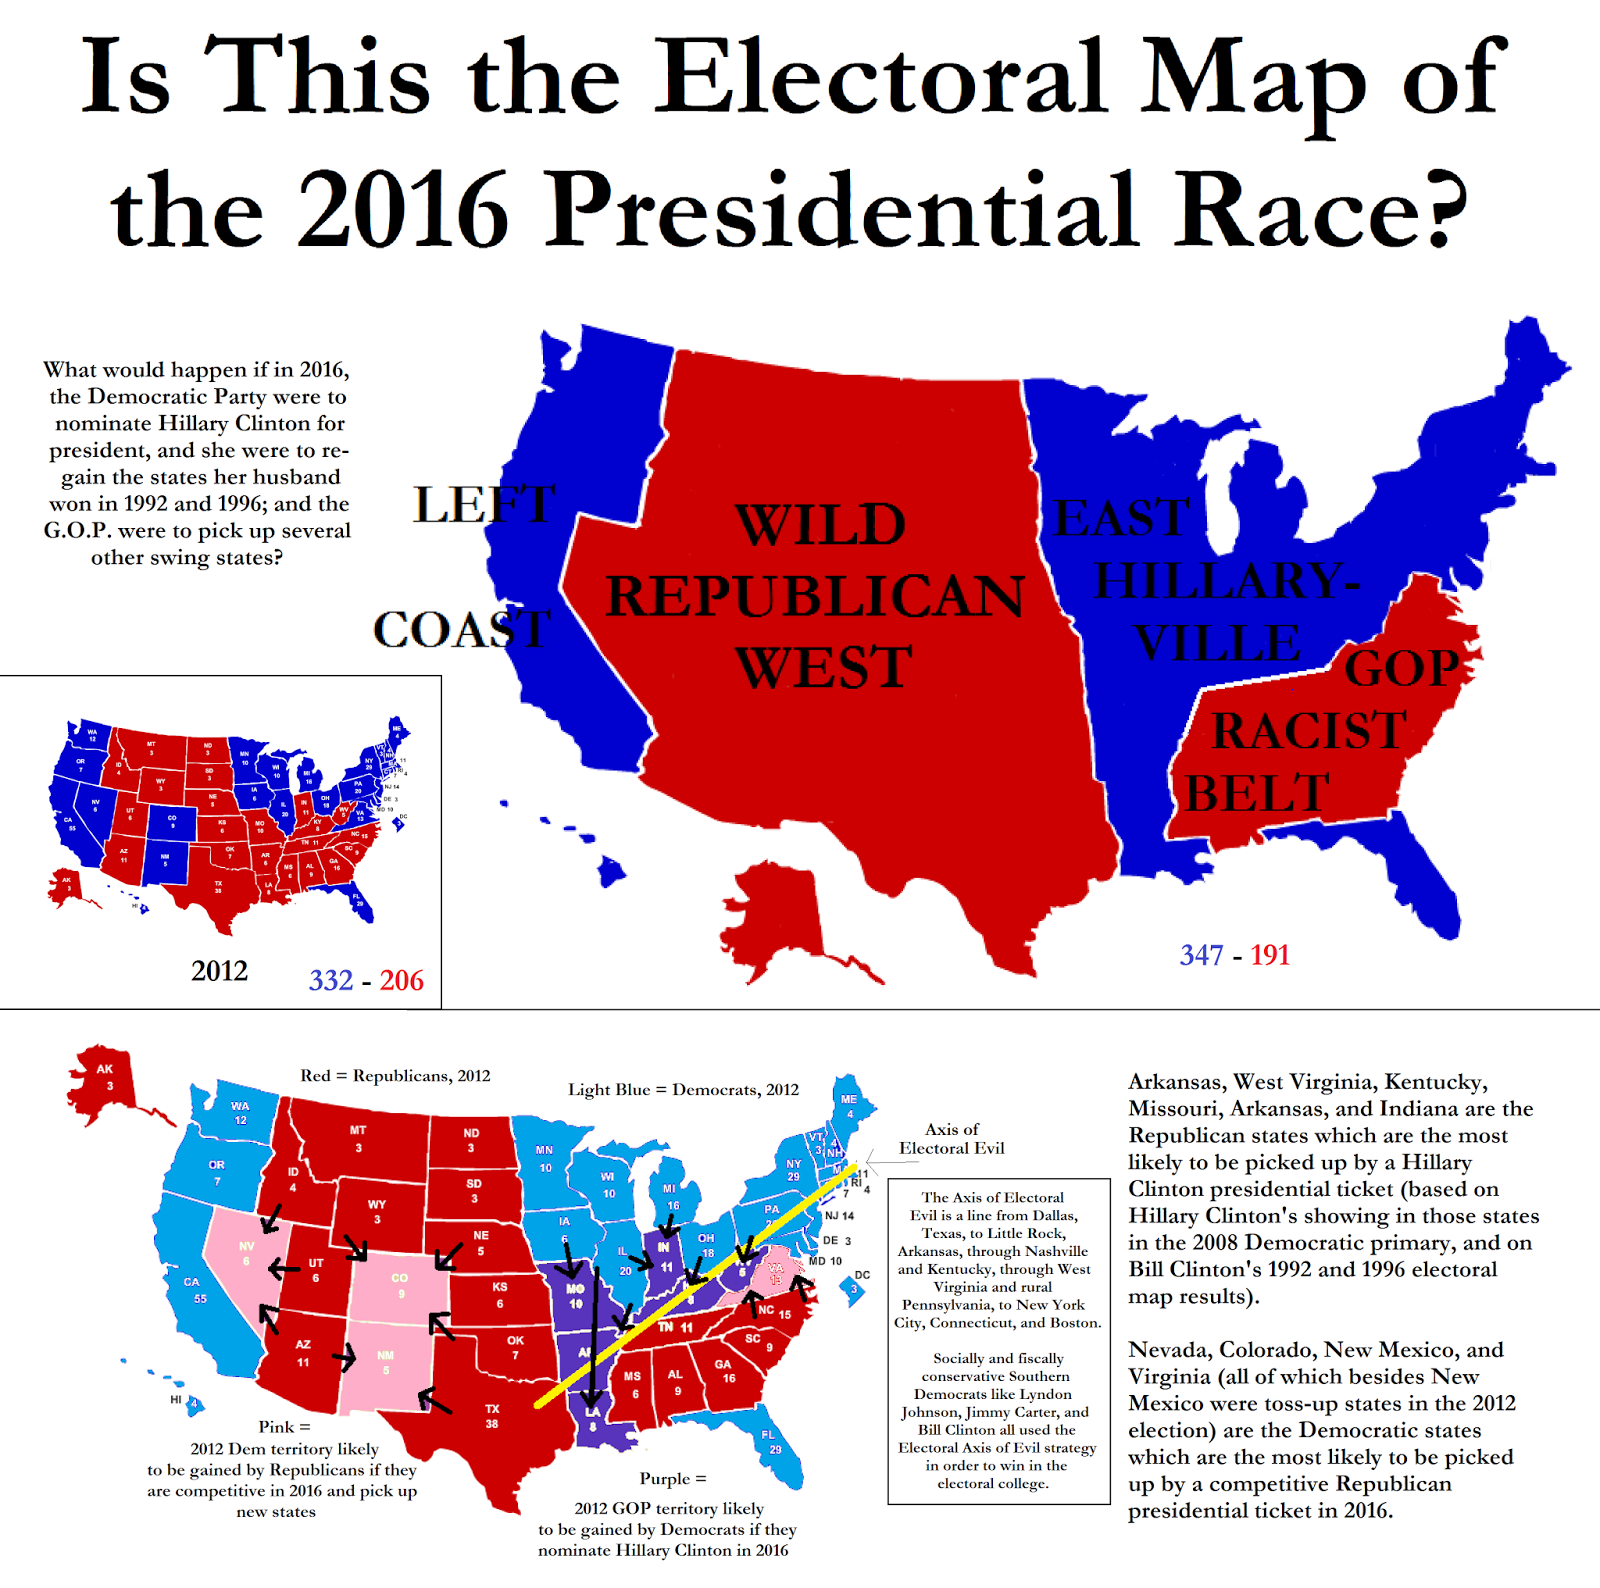 Is This The Electoral Map Of The 2016 Presidential Race